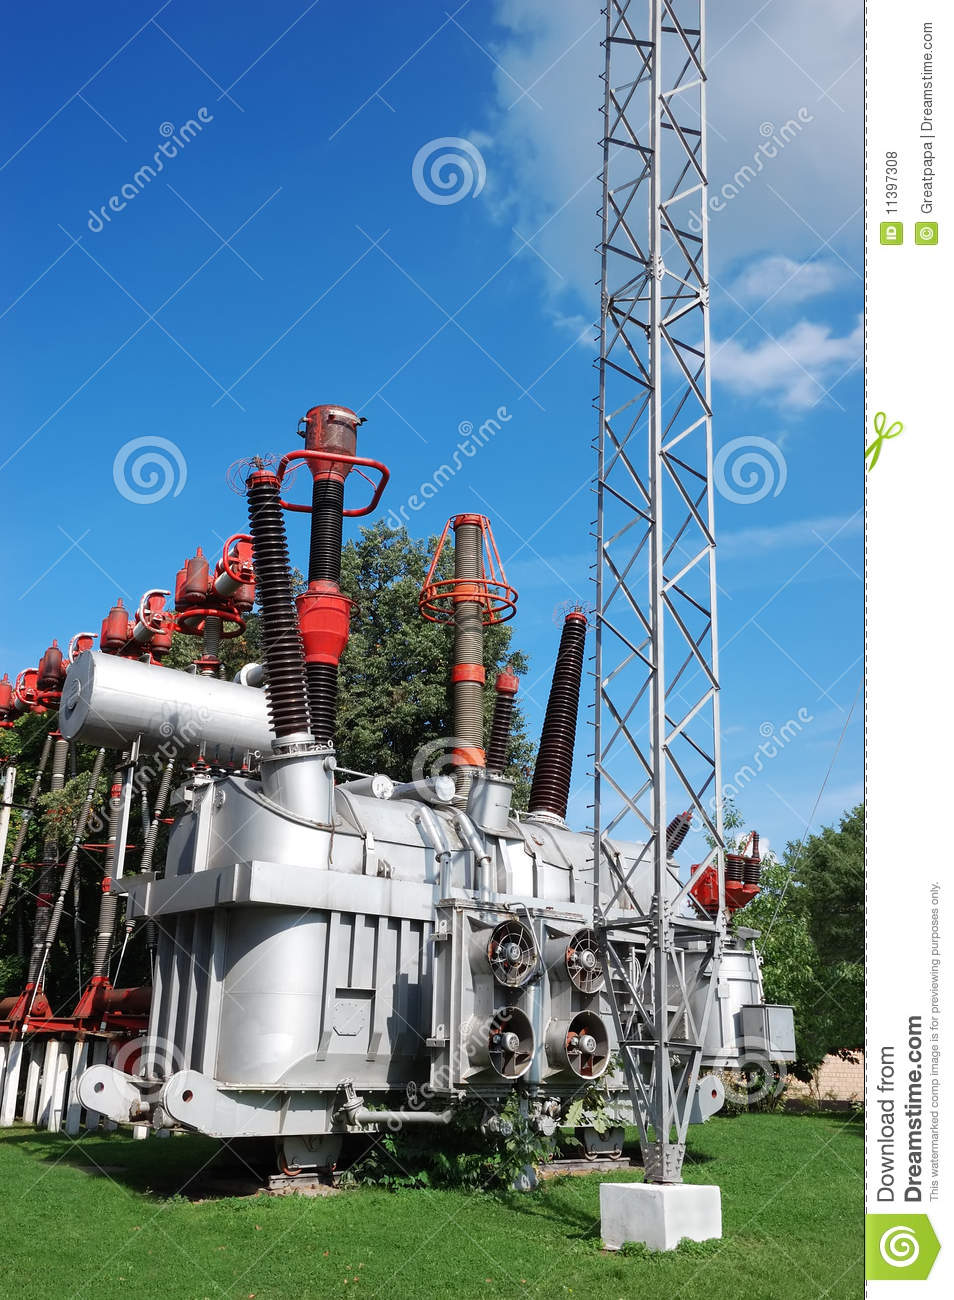 Electrical Transformer Substation Royalty Free Stock